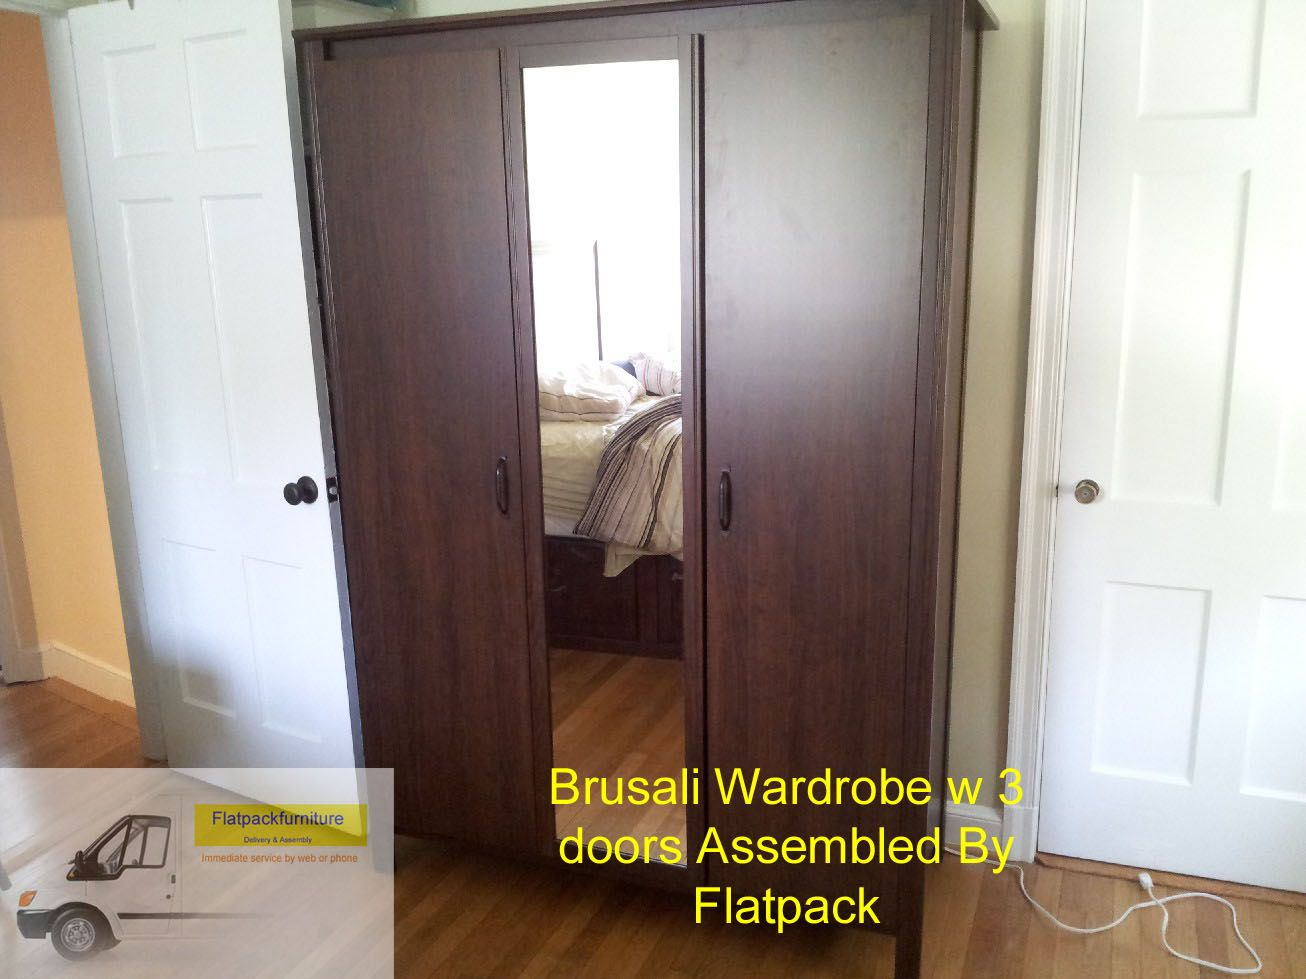 Brusali Wardrobe Ikea Article Number